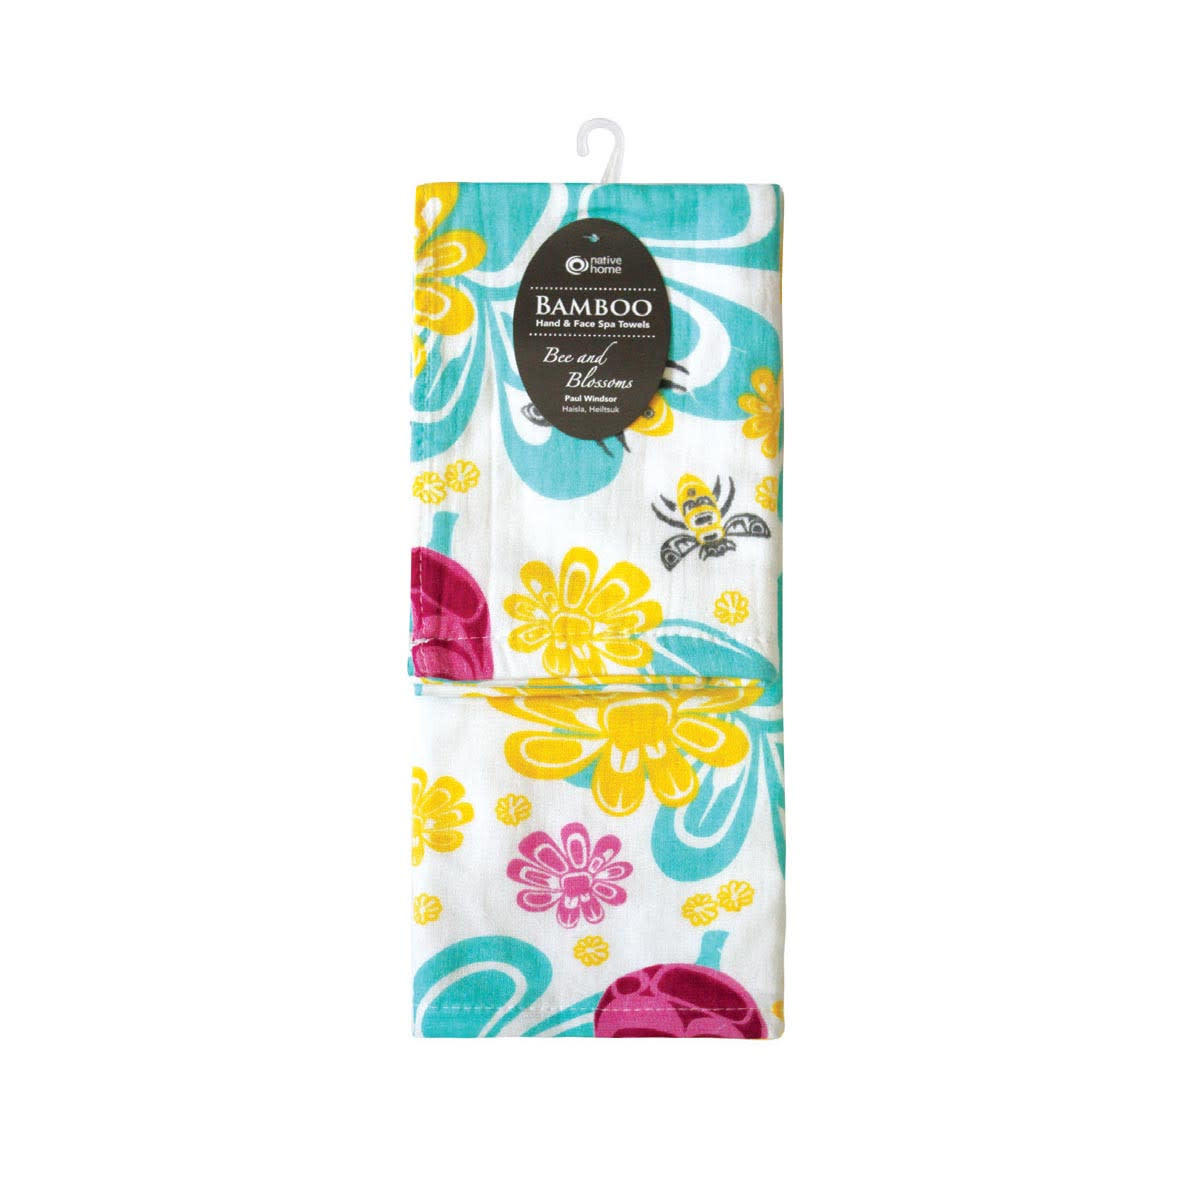 Bamboo Hand & Face Spa Towels-1